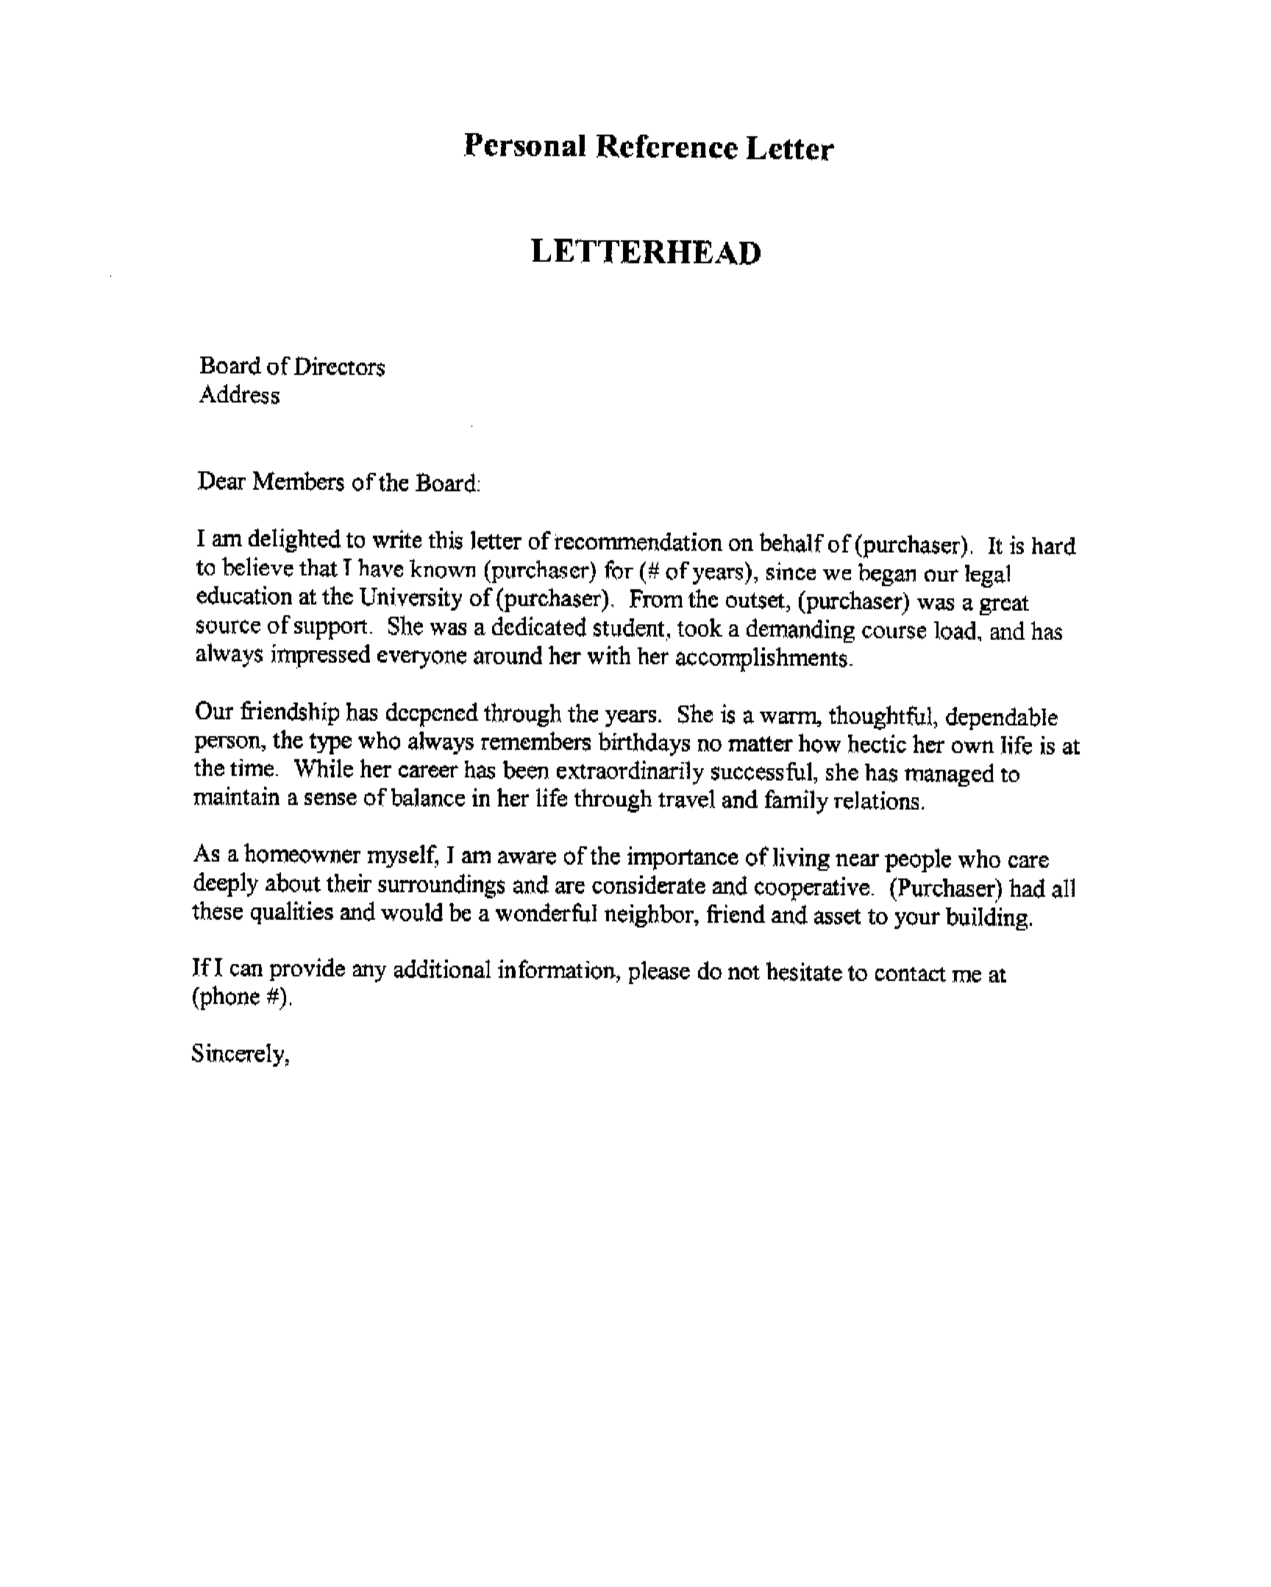 How to Write a Letter of Recommendation (with Sample Letters)